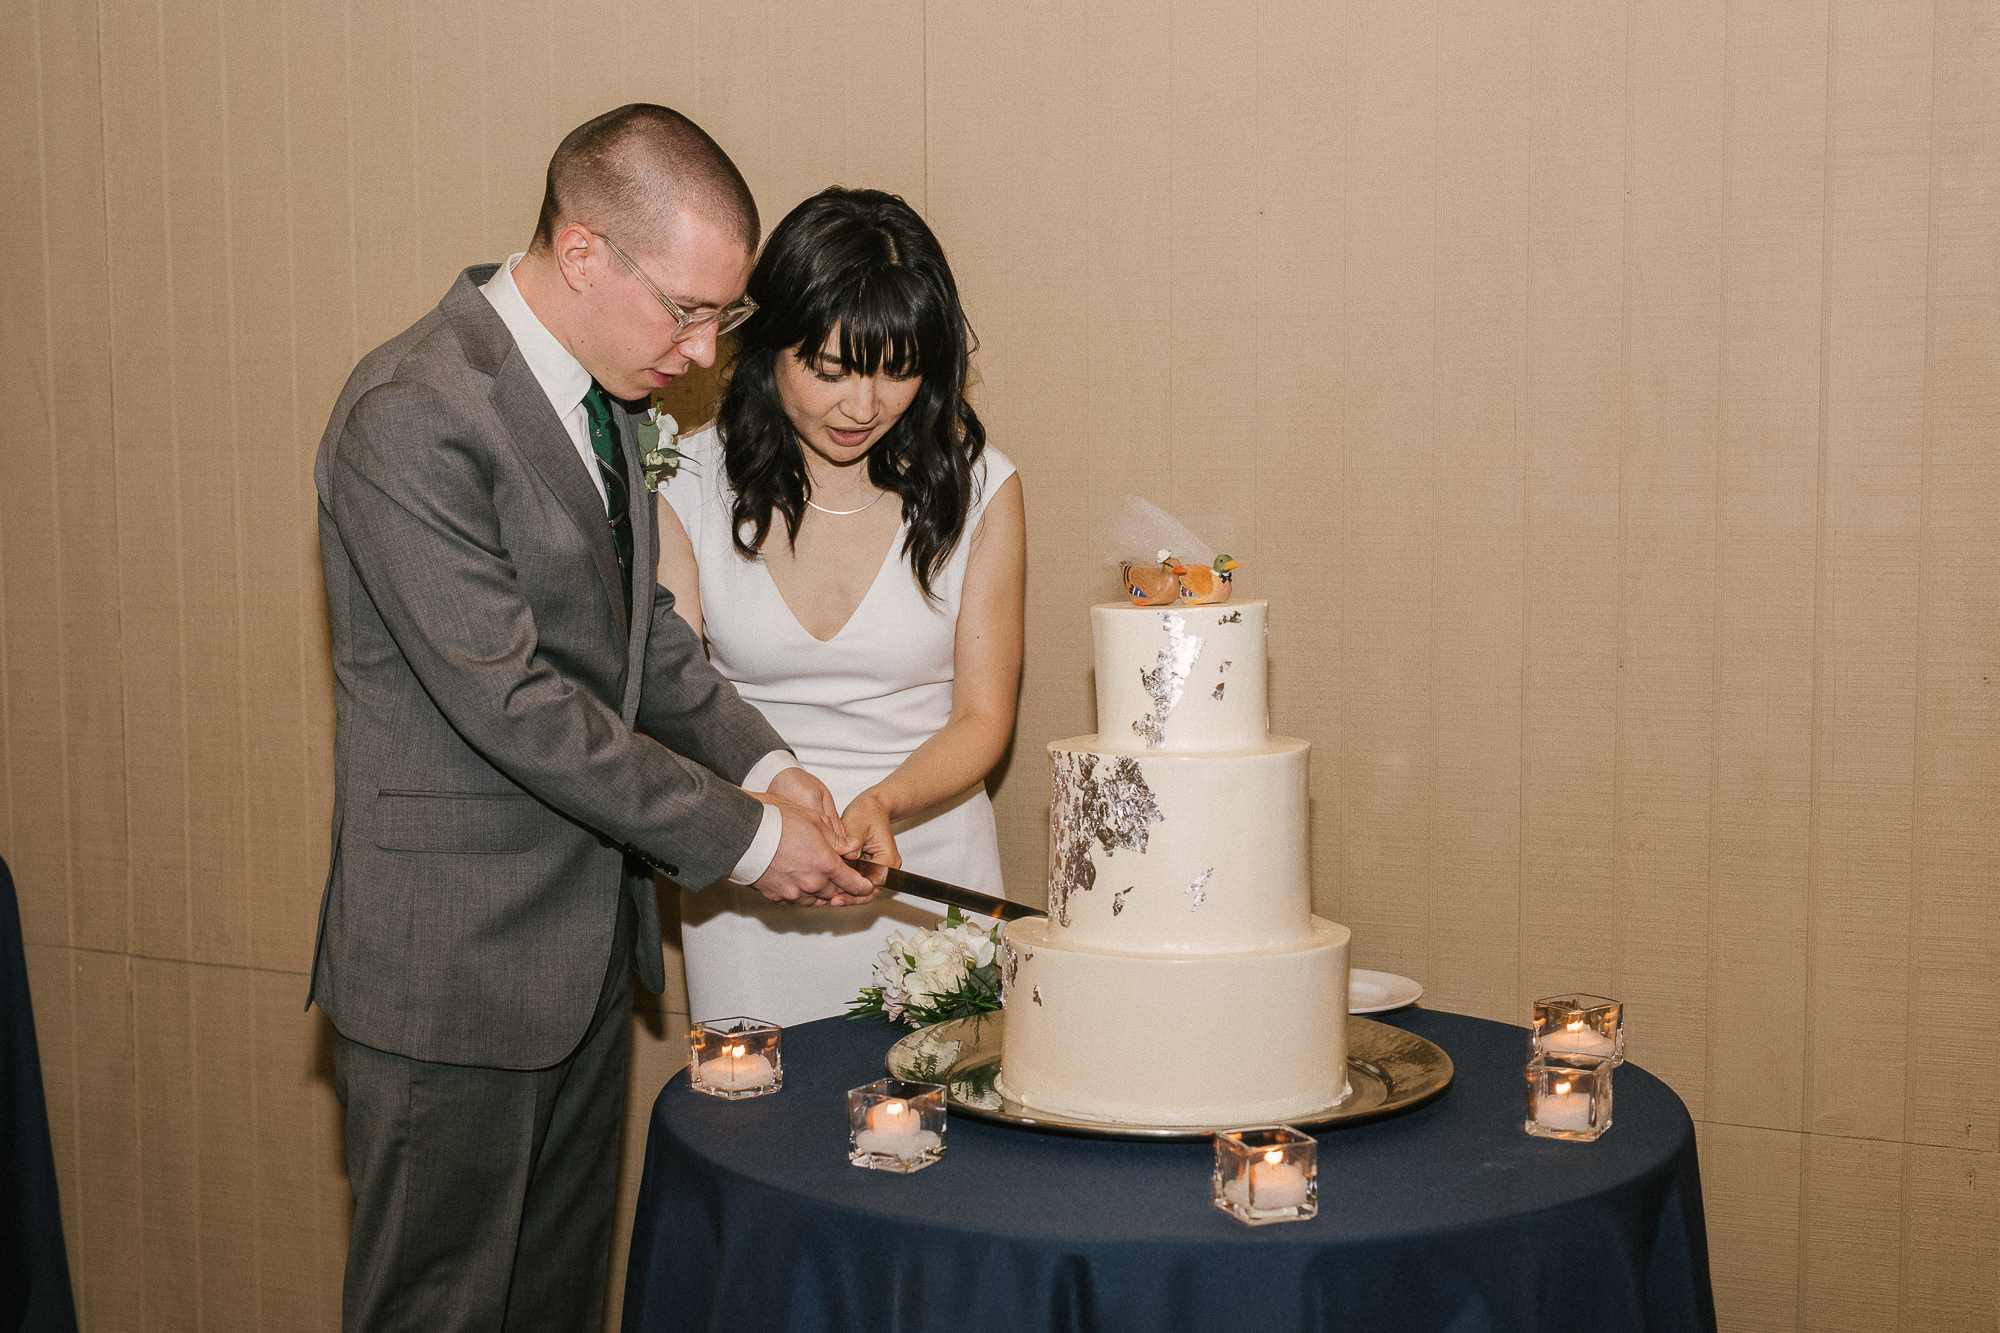 Eurry+Jarrett_Married_Blog_177.jpg